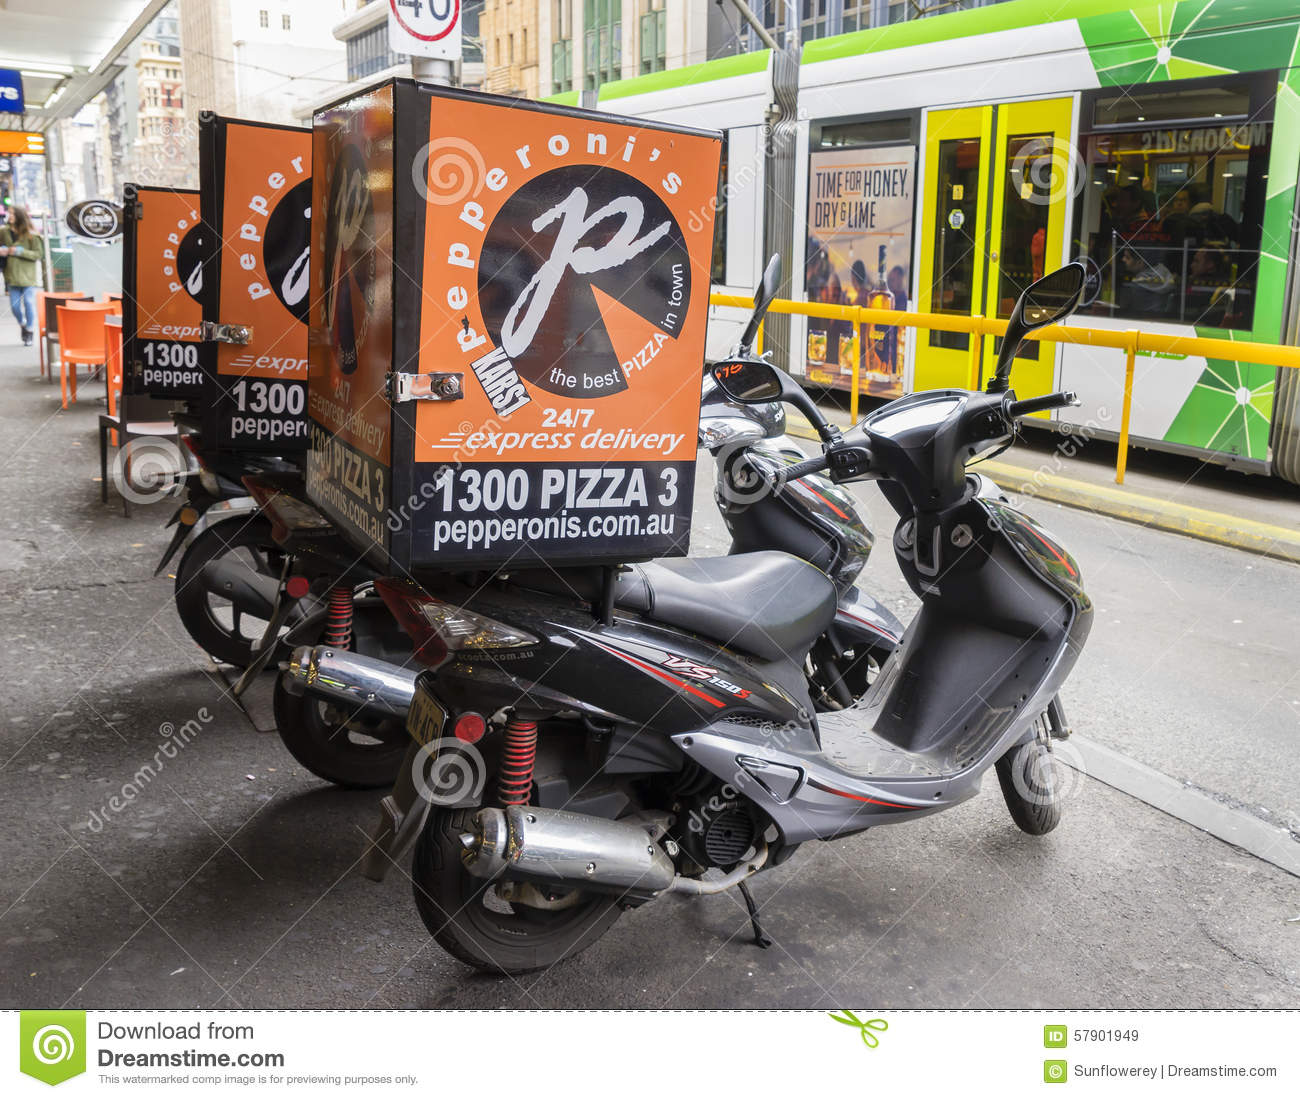 Scooters For Pizza Delivery Parked Outside A Pizza Shop In Melbourne